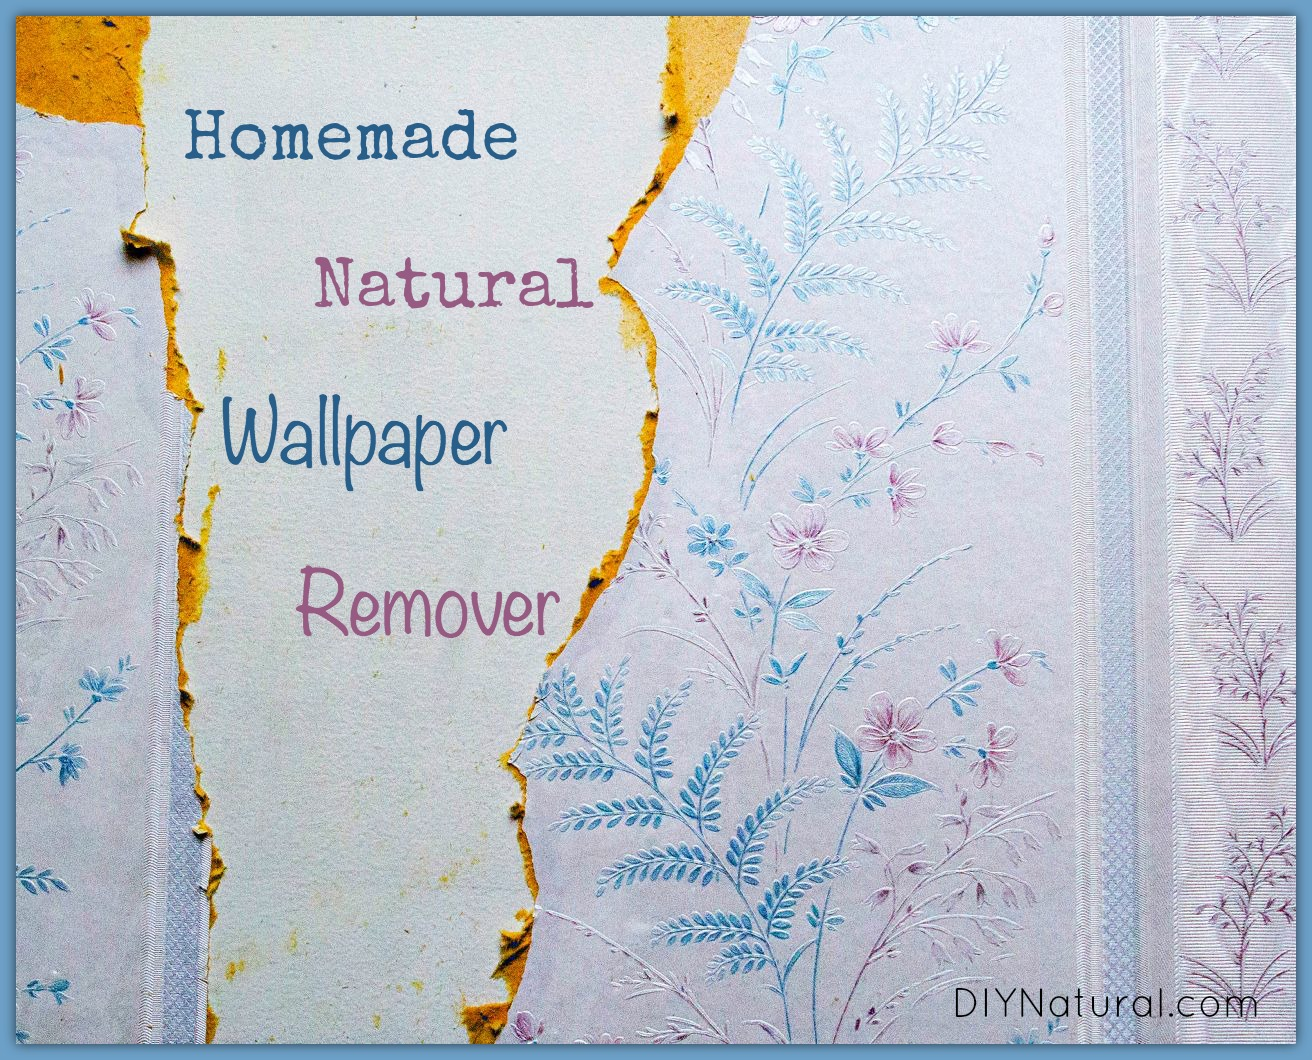 Natural Homemade Wallpaper Remover and How To Use It 1312x1060